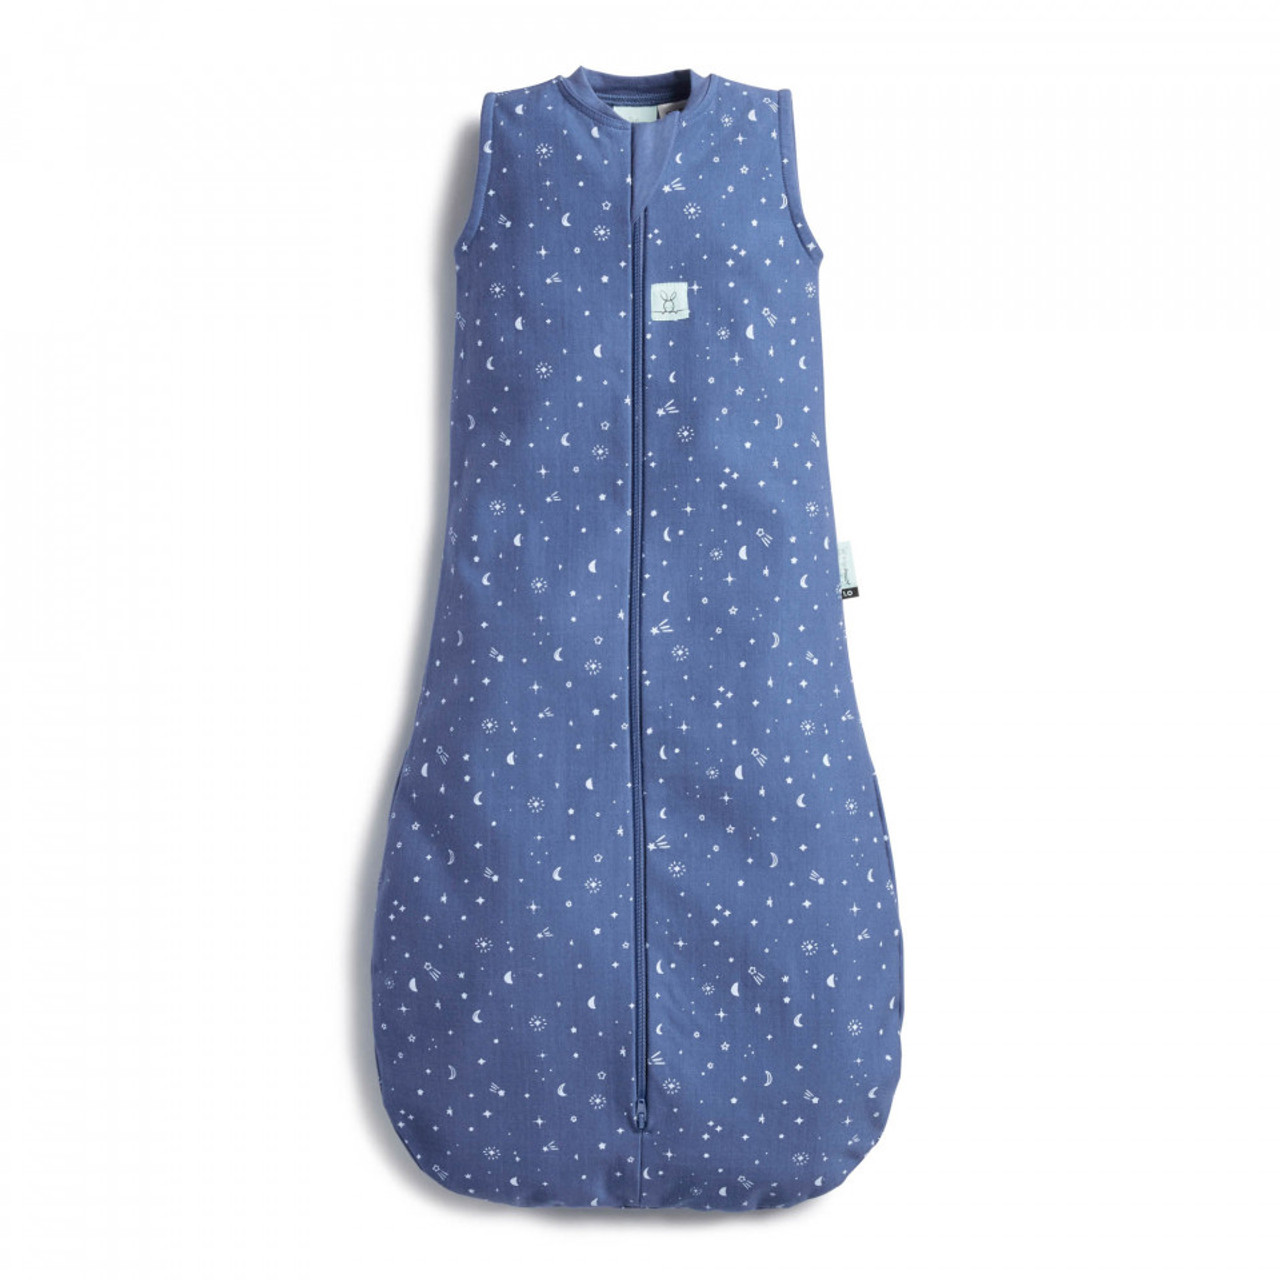 ergoPouch Jersey Sleeping Bag 1.0Tog 8-24 Months NIGHT SKY at Baby Barn Discounts